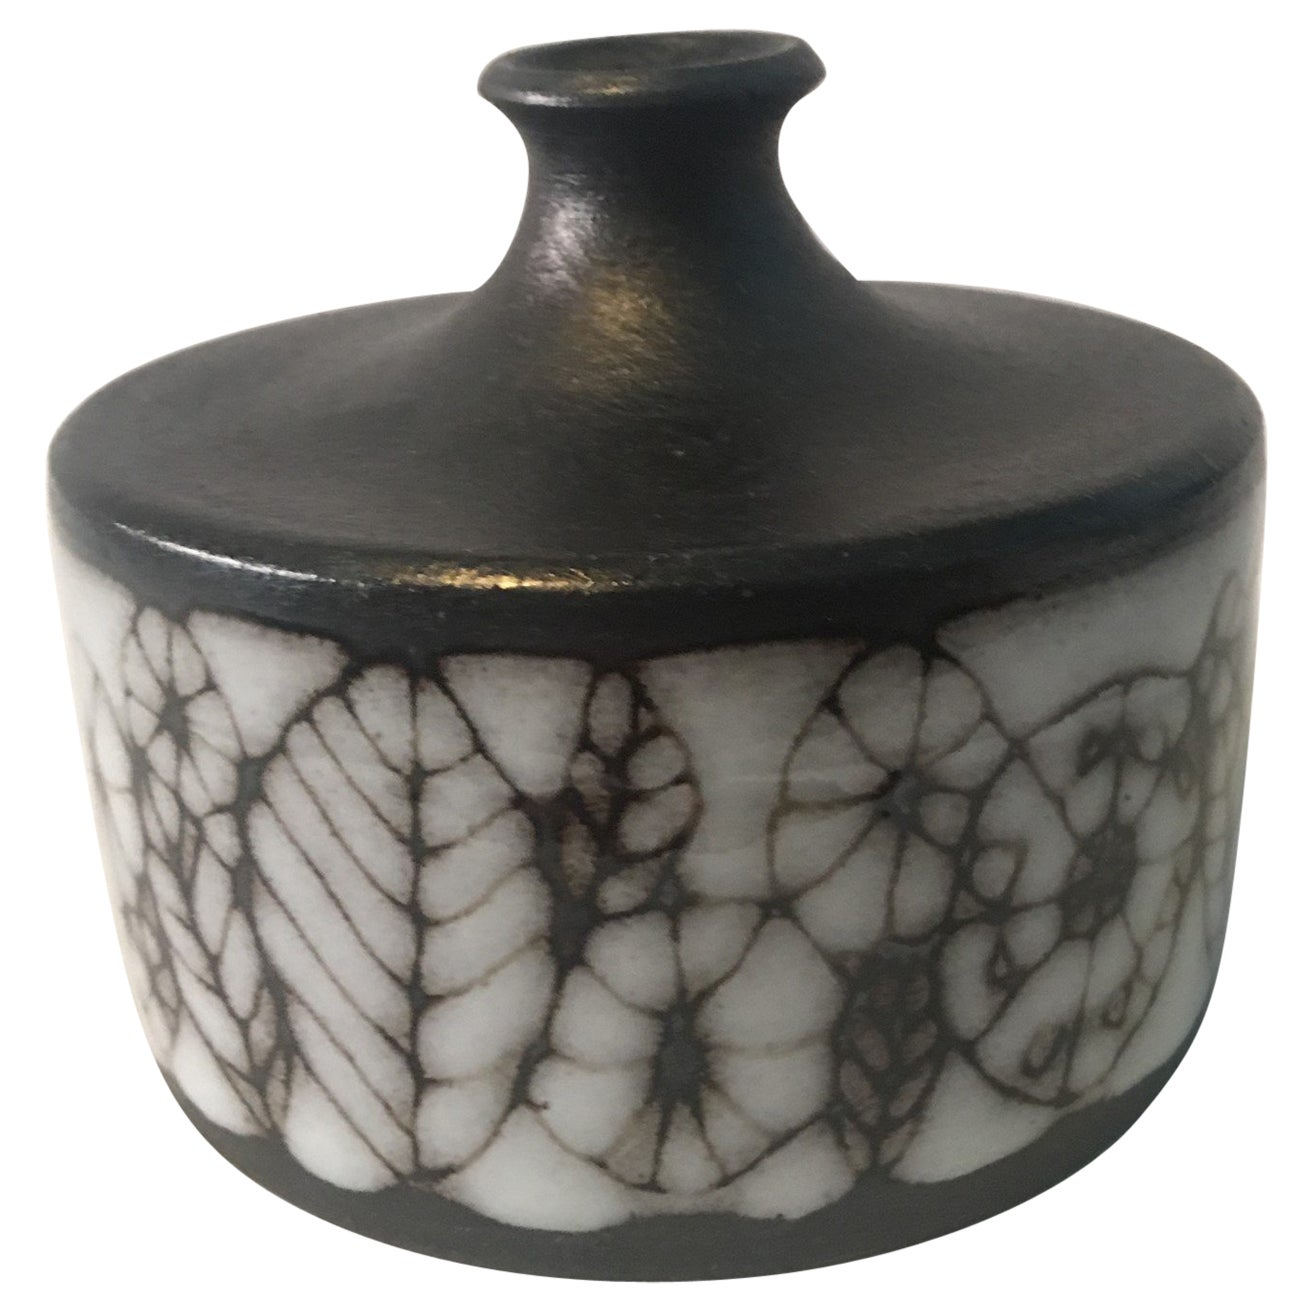 Narrow Neck Ceramic Vase by Wilhelm and Elly Kuch of Germany